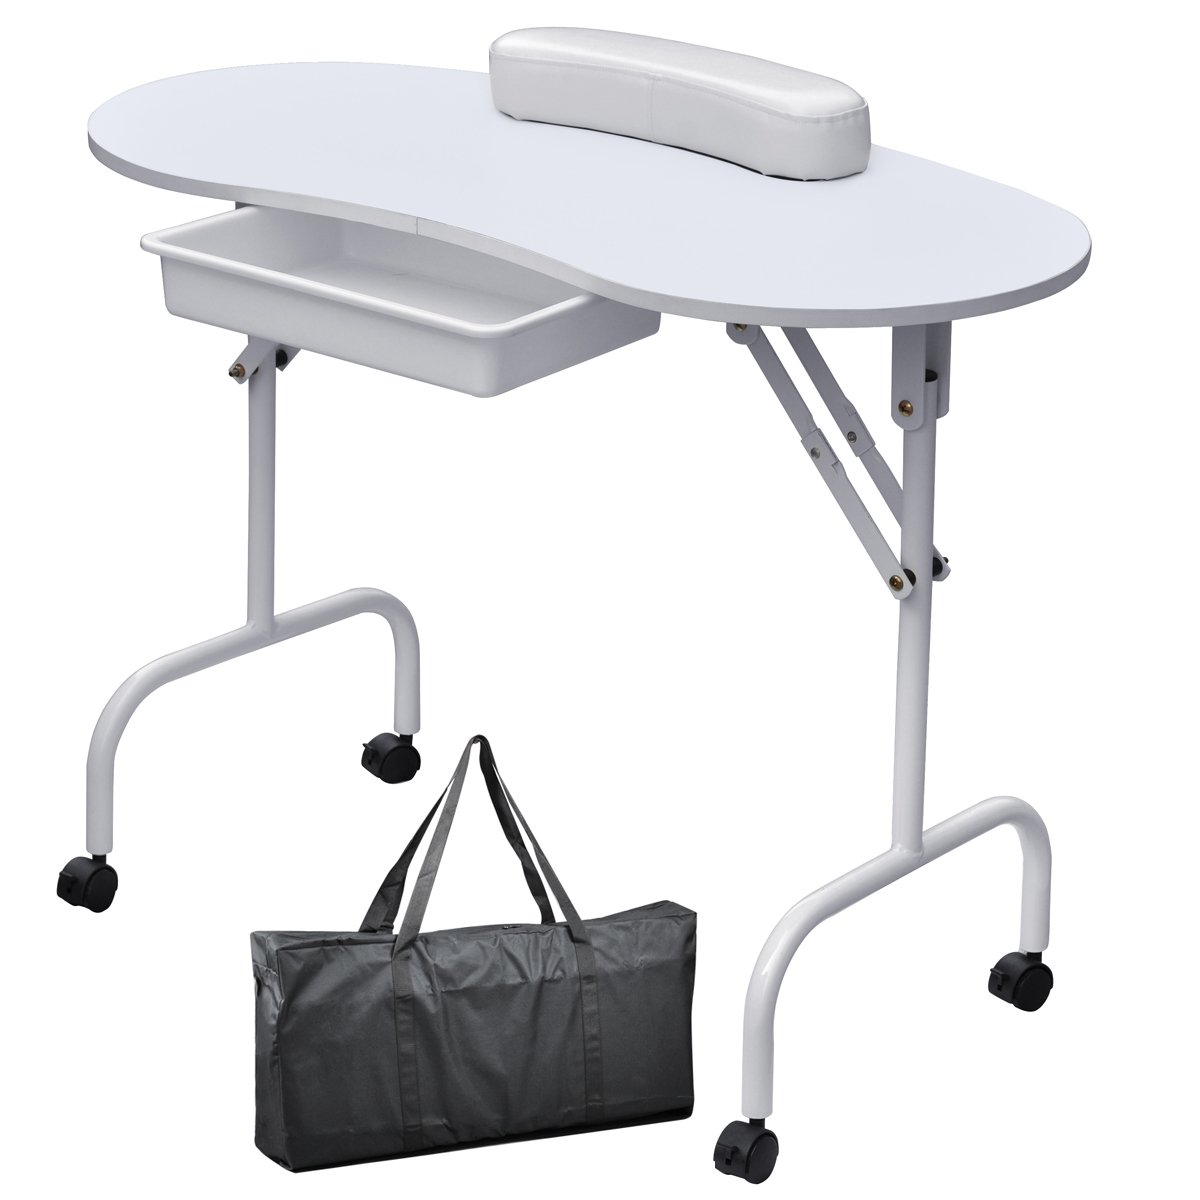 tinxs Professional Collapsible Manicure Nail Art Table Folding Foldable Portable Technician Desk Station Workstation with Pull Out Drawer/ Carry Bag/ Wrist Rest (White)